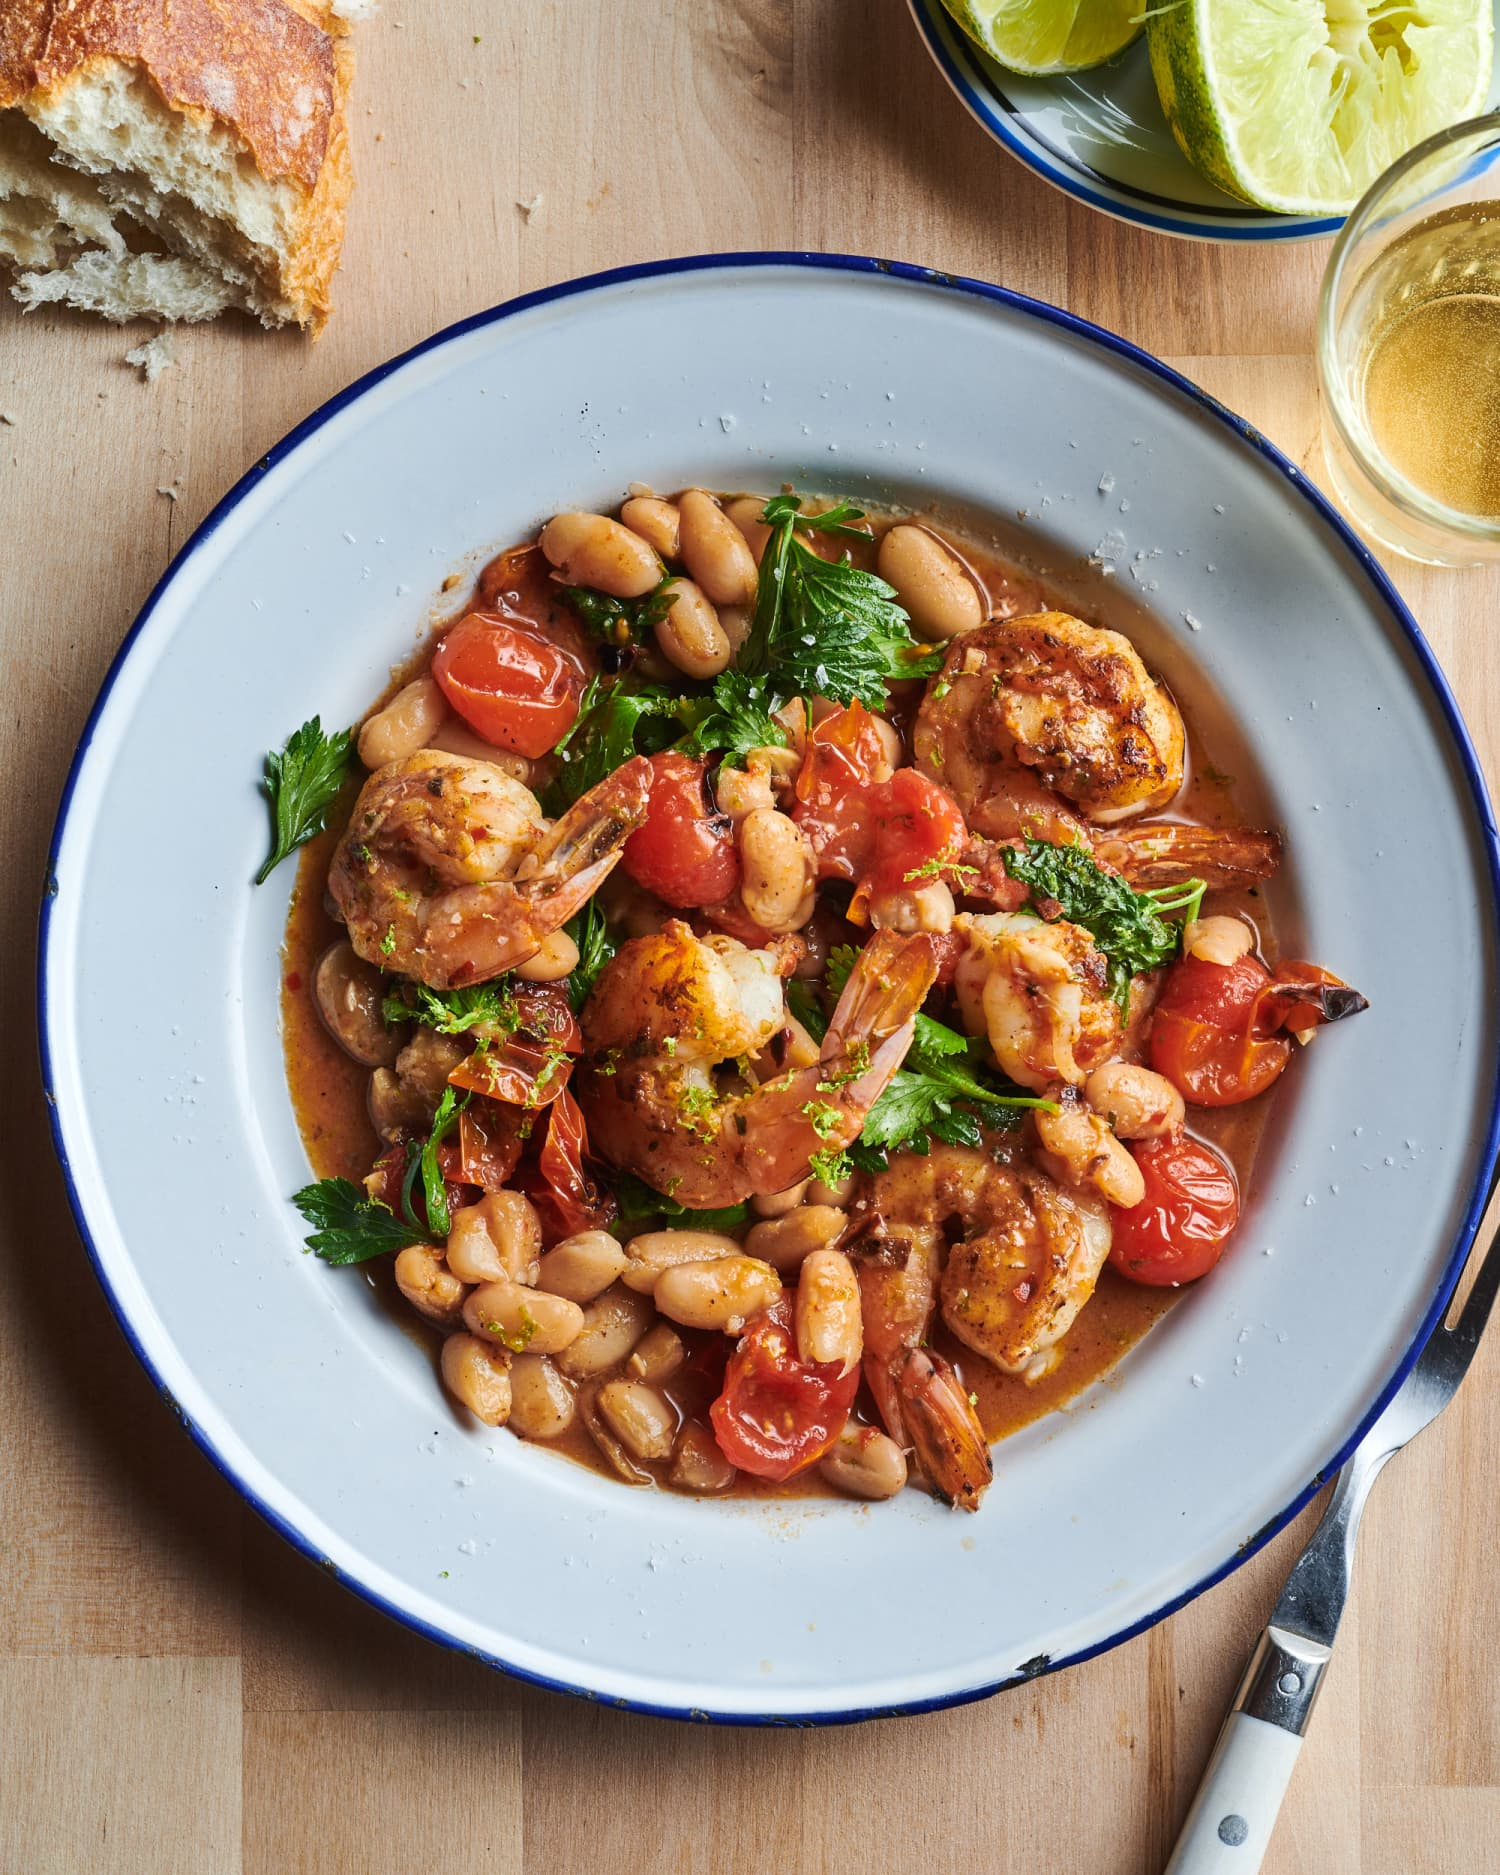 The 20-Minute Garlicky Shrimp Dinner You'll Make Again and Again